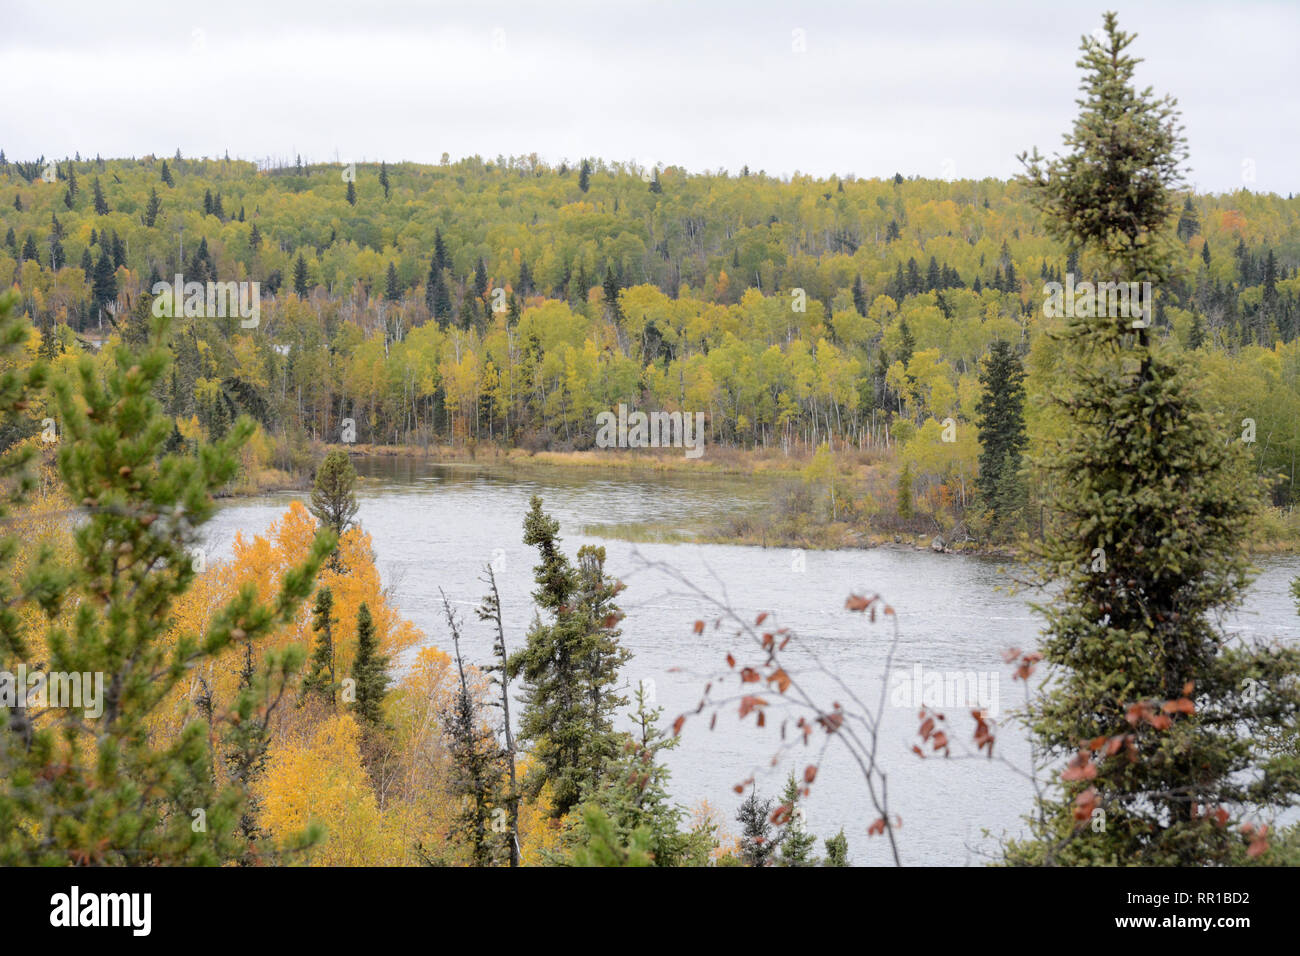 The autumn colours of the boreal forest on the shores of Otter Lake near the village of Missinipe in northern Saskatchewan, Canada.north - Stock Image